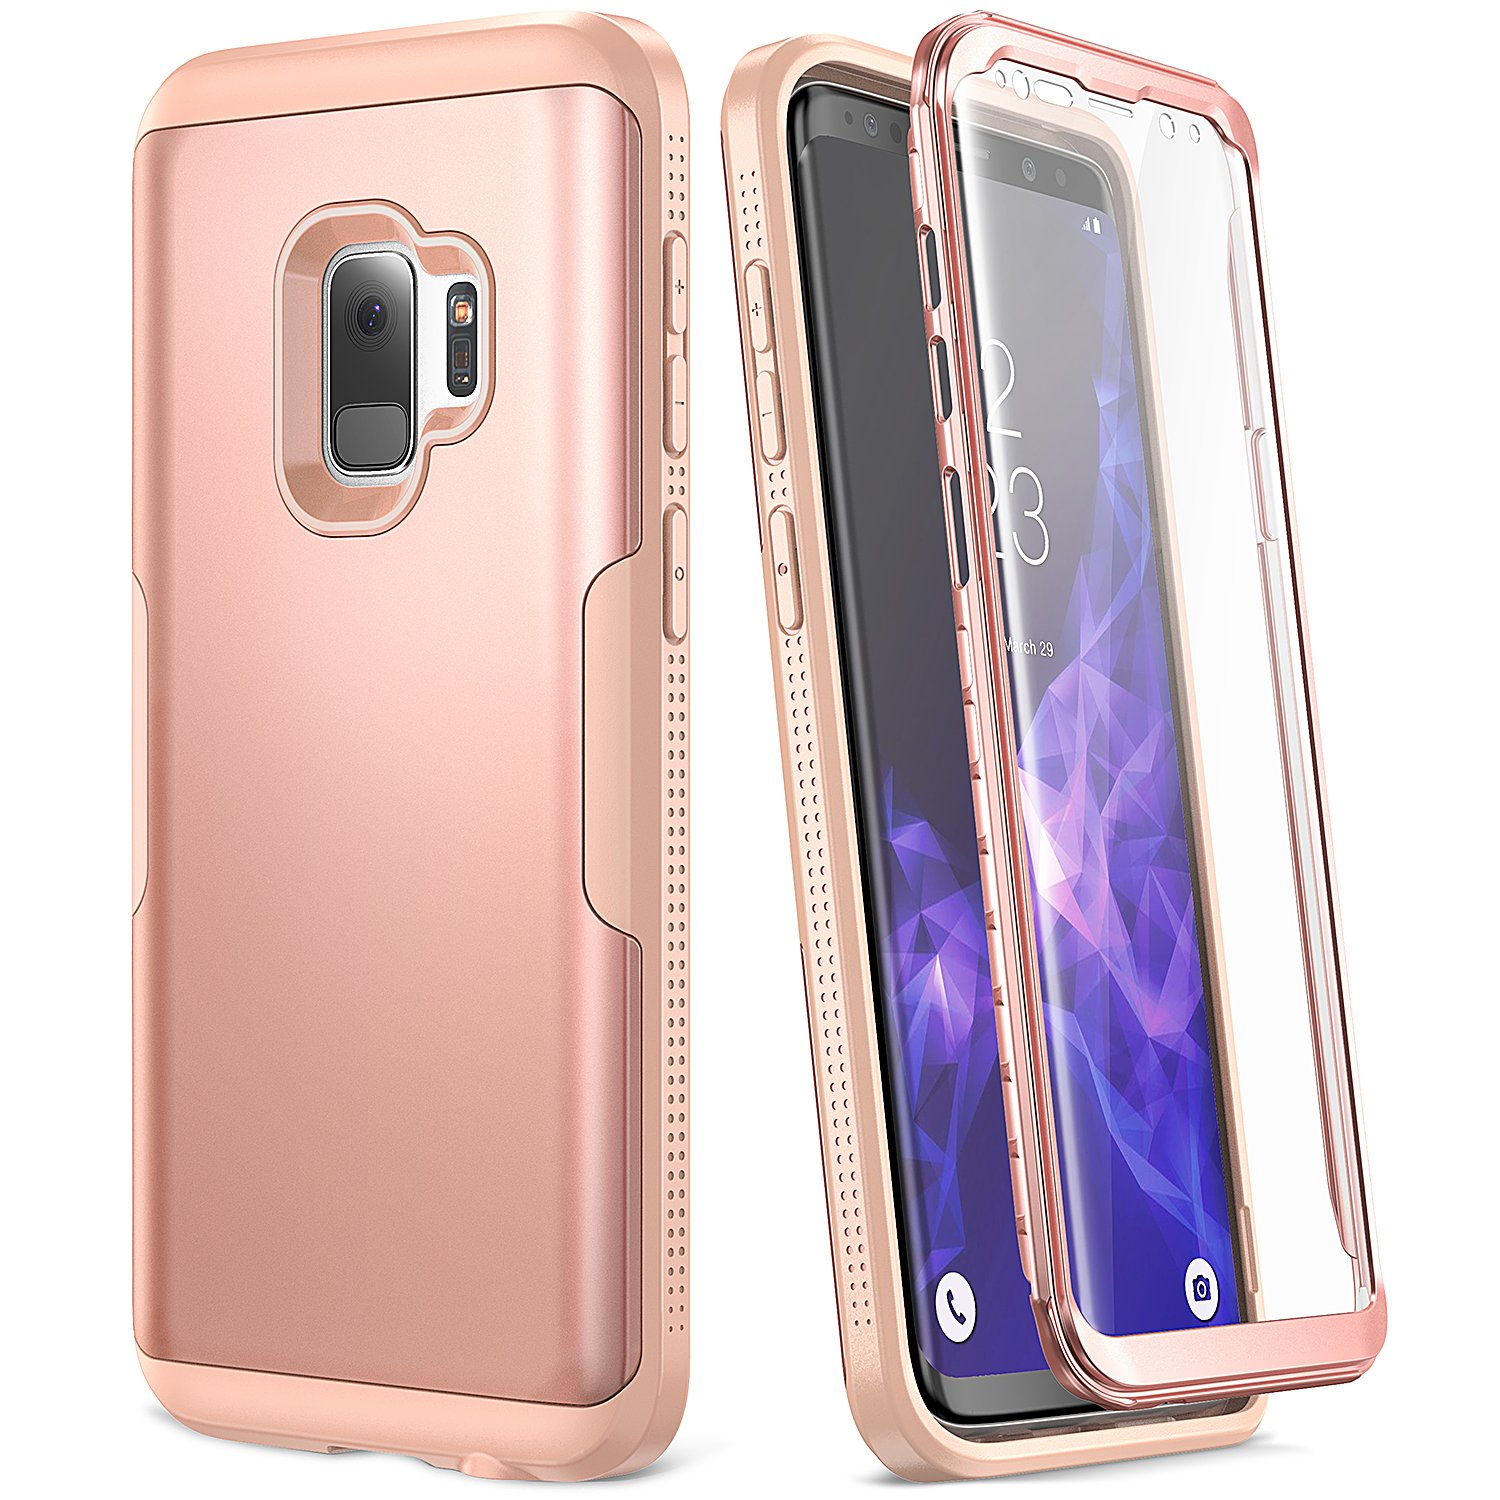 Galaxy S9 Case, YOUMAKER Rose Gold with Built-in Screen Protector Heavy Duty Protection Shockproof Slim Fit Full Body Case Cover for Samsung Galaxy S9 5.8 inch (2018) - Rose Gold/Pink